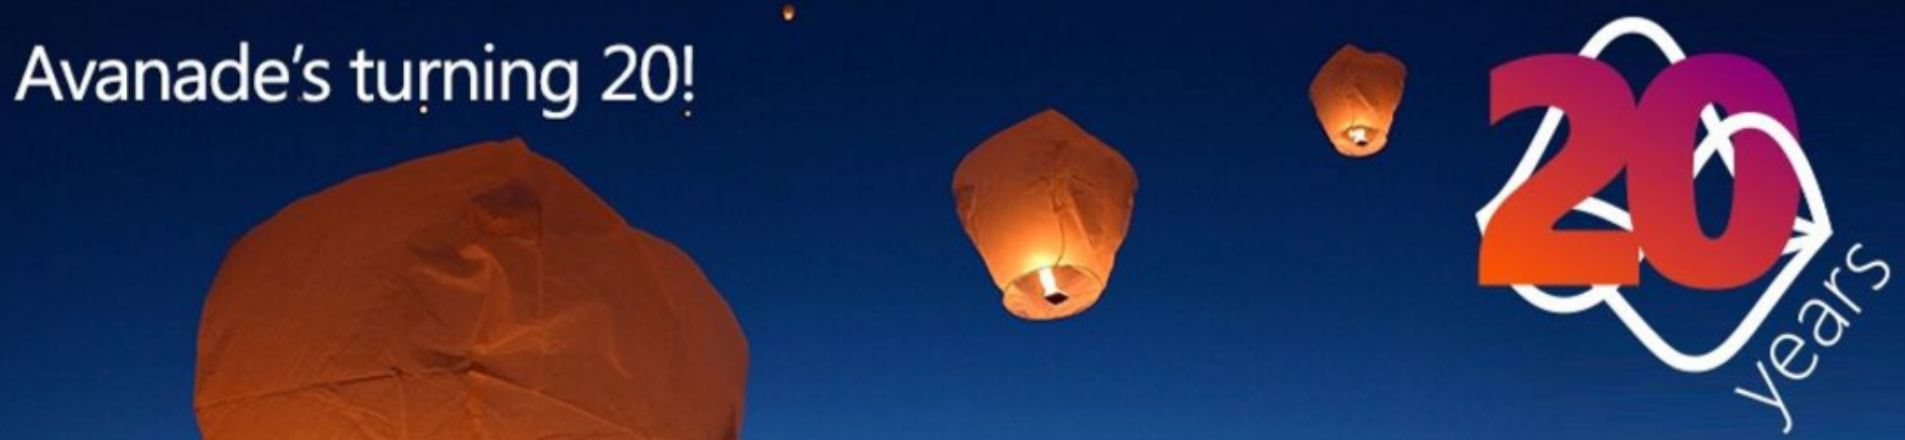 Avanade 20 year celebration header, fire lanterns in night sky.